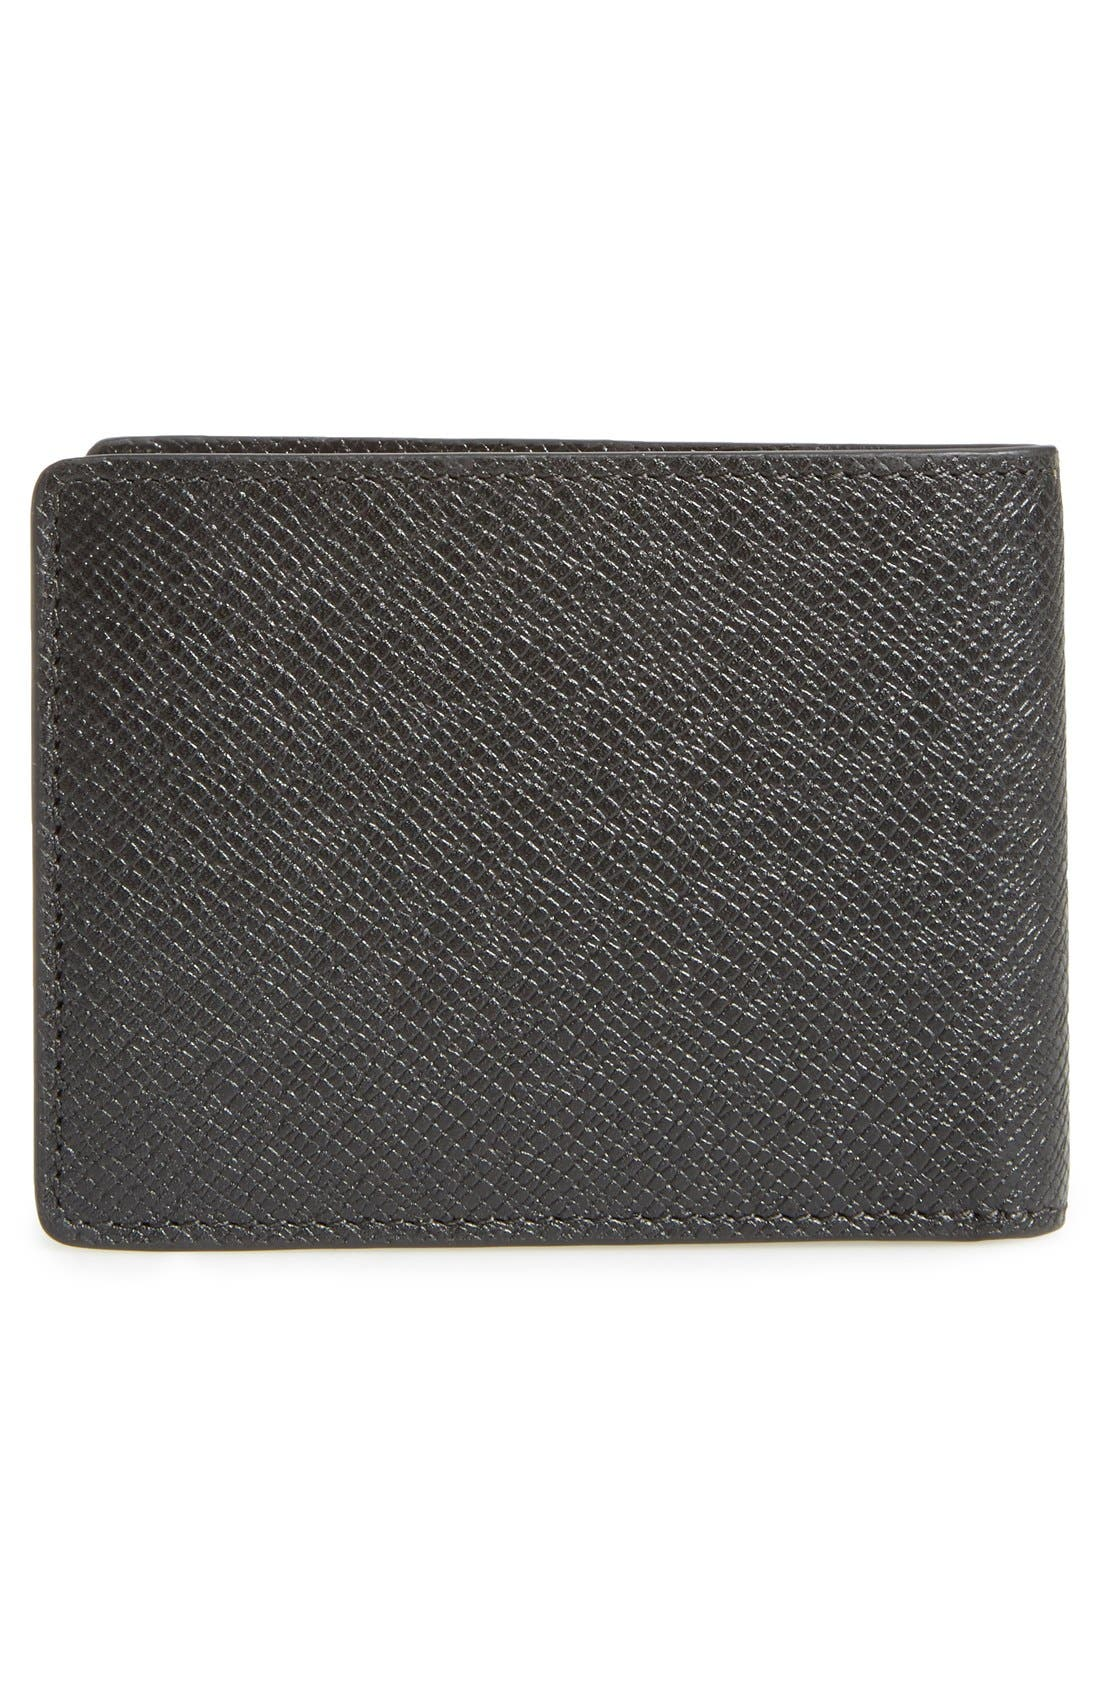 BOSS, 'Signature' Bifold Calfskin Leather Wallet, Alternate thumbnail 3, color, BLACK